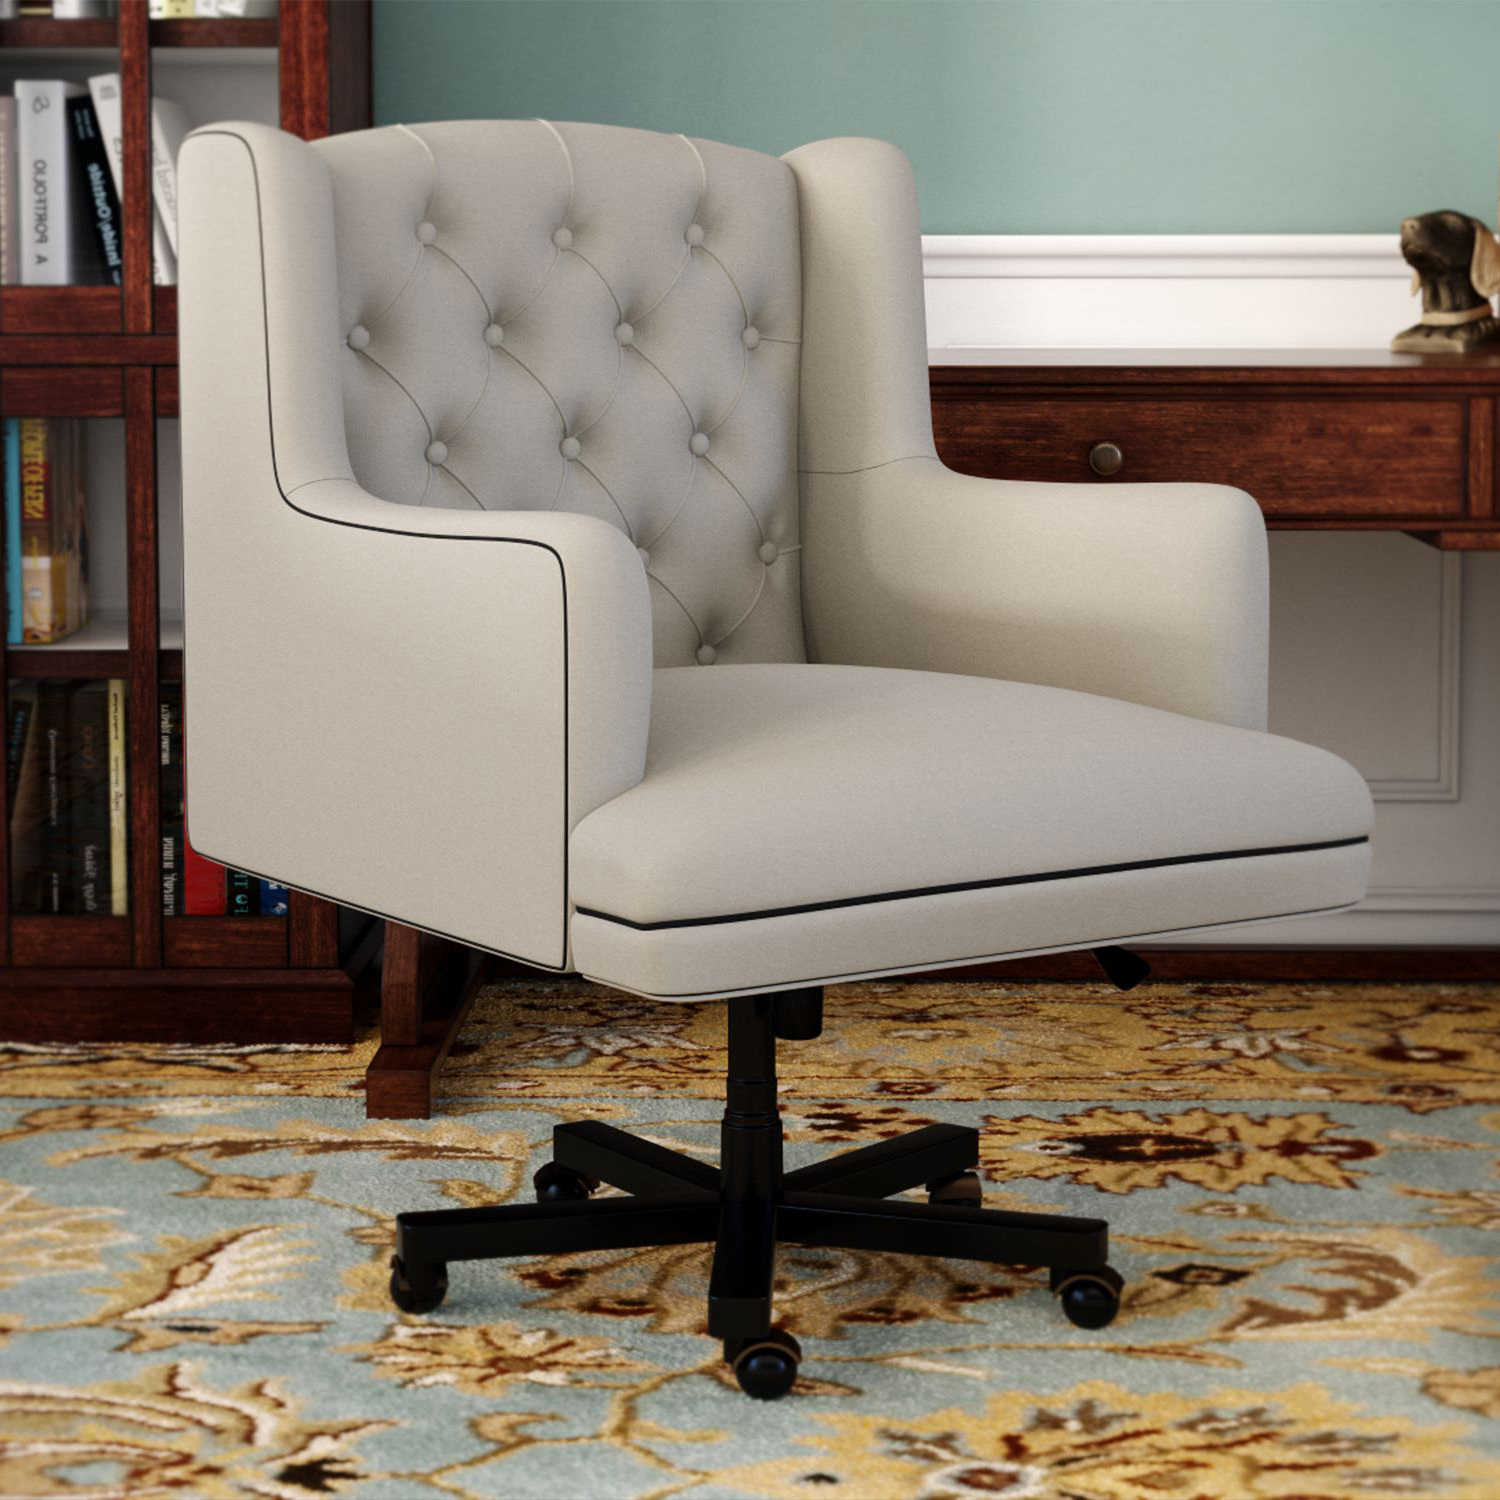 Nichol Swivel Accent Chairs Inside Widely Used Darby Home Co Nichols Desk Chair & Reviews (View 13 of 20)